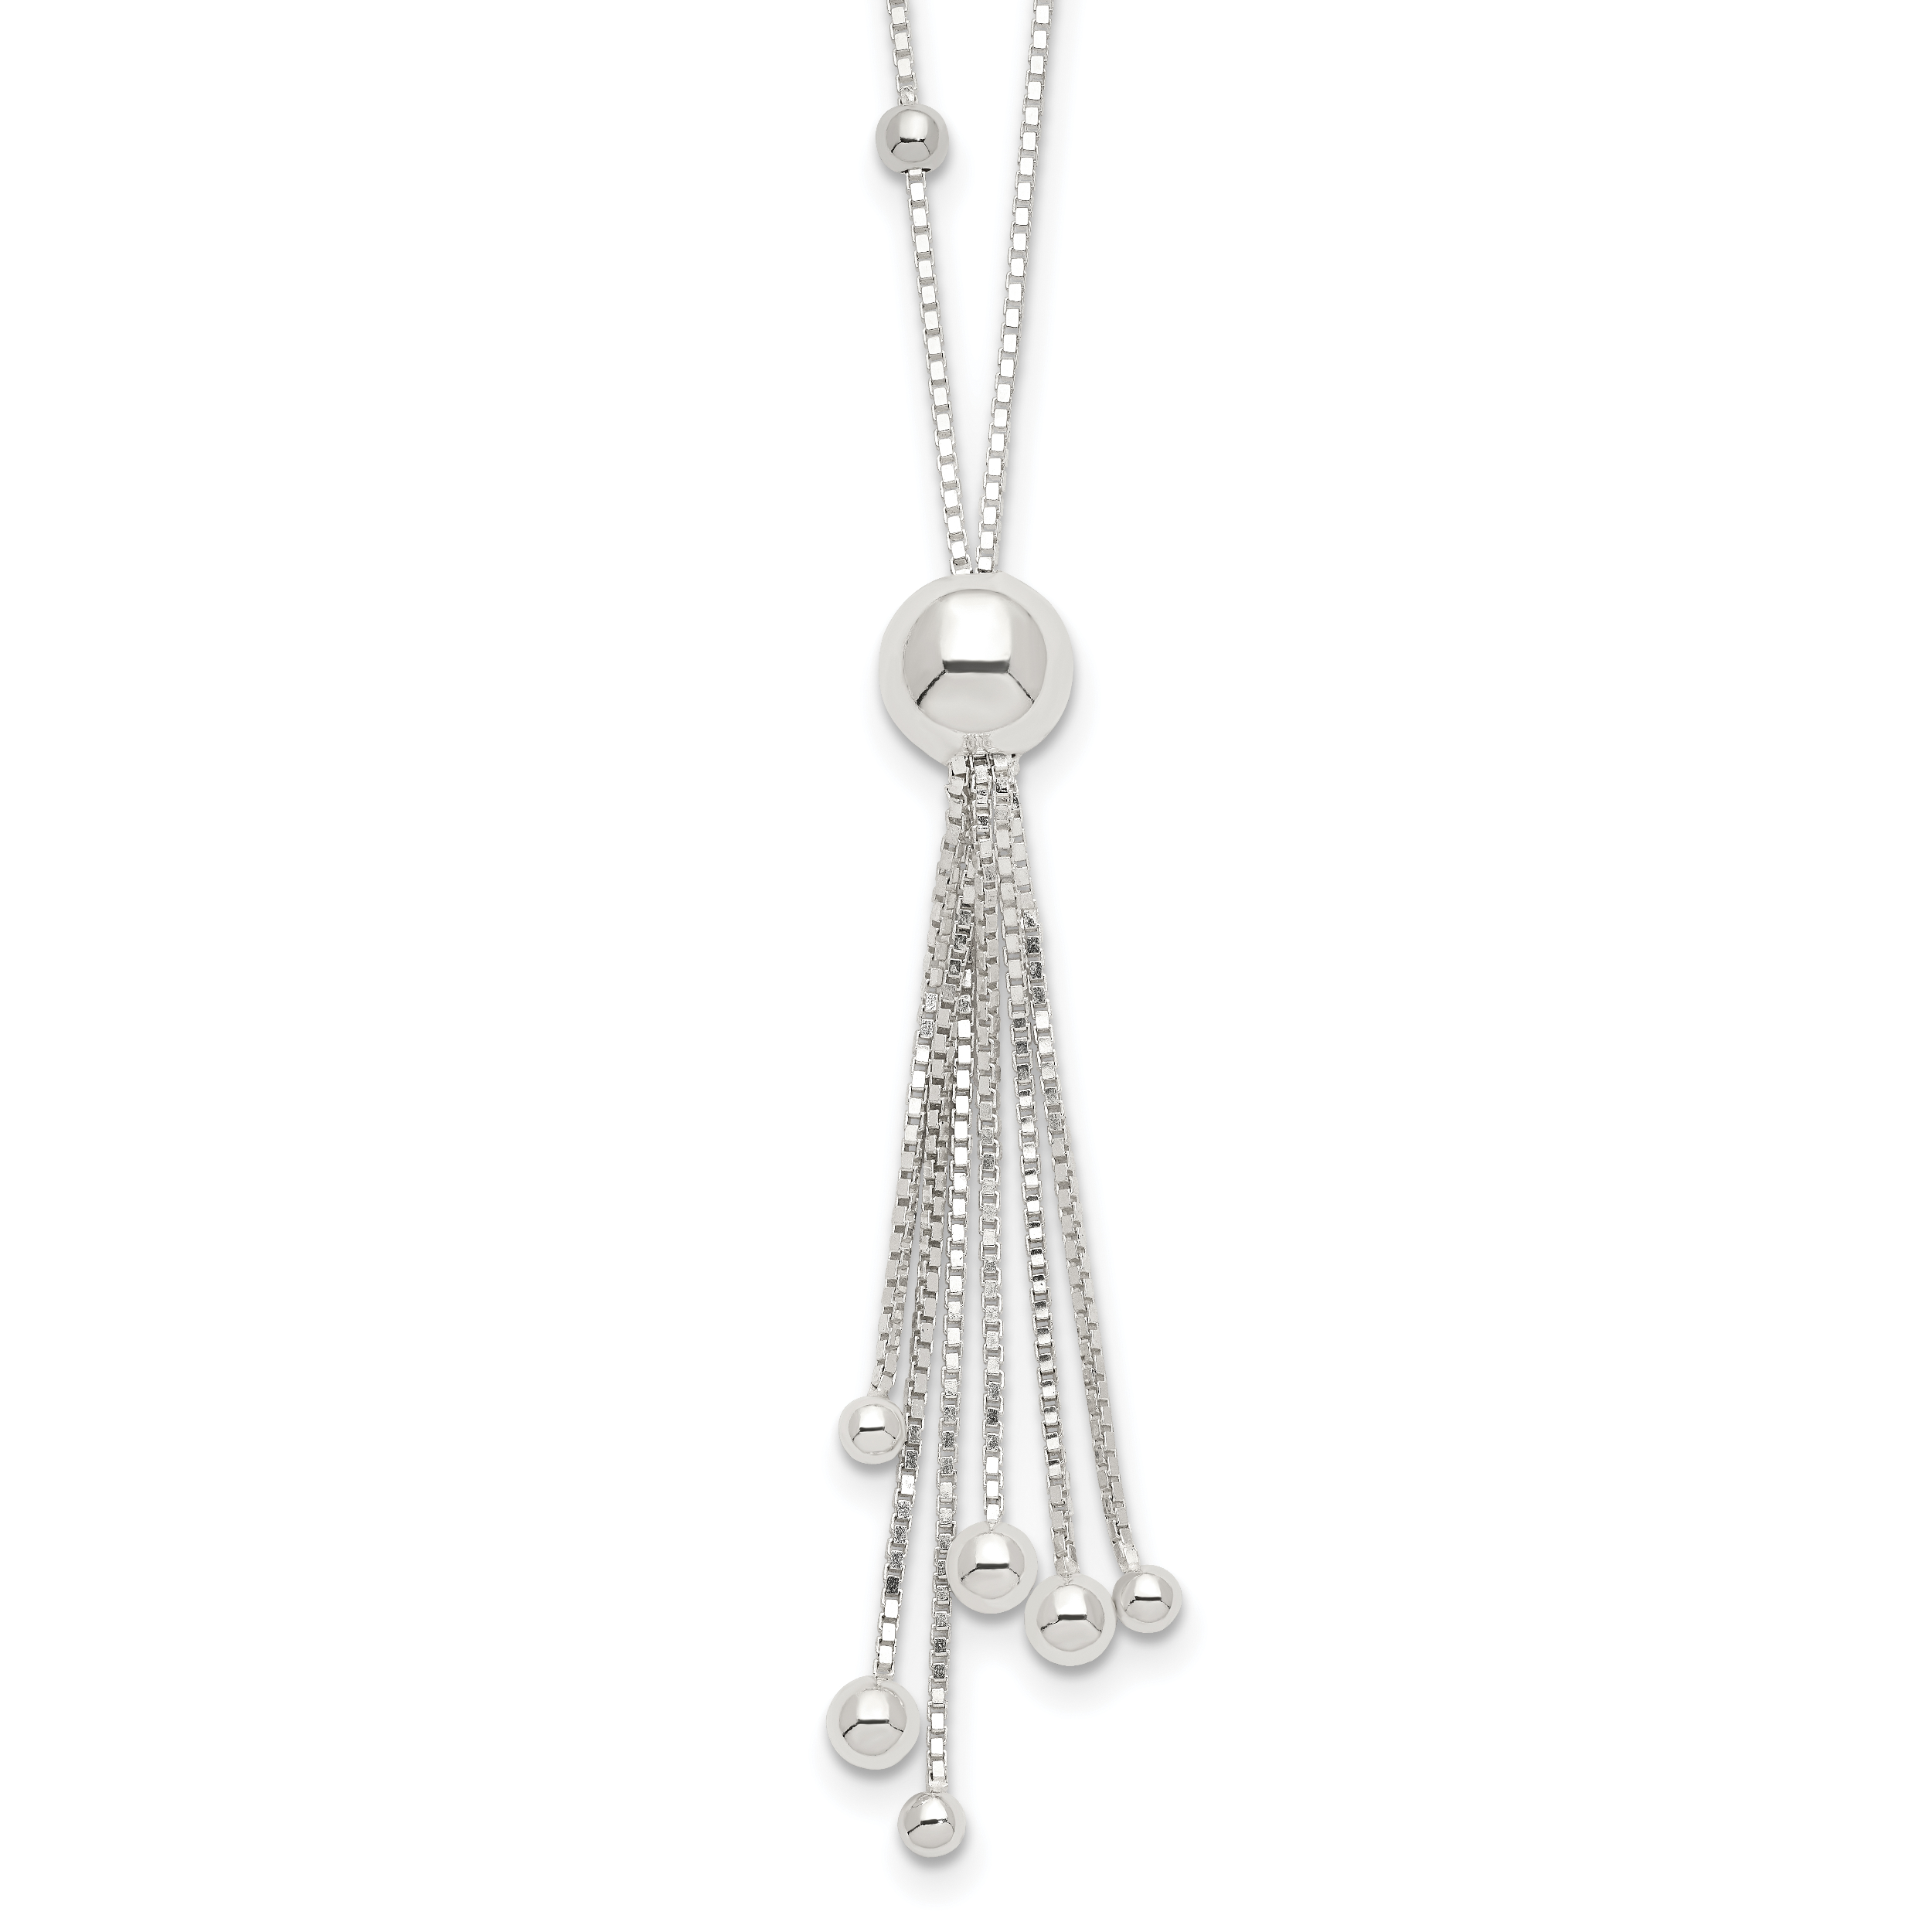 Sterling Silver Necklace | Weight: 3.83 grams, Length: 18mm, Width: mm